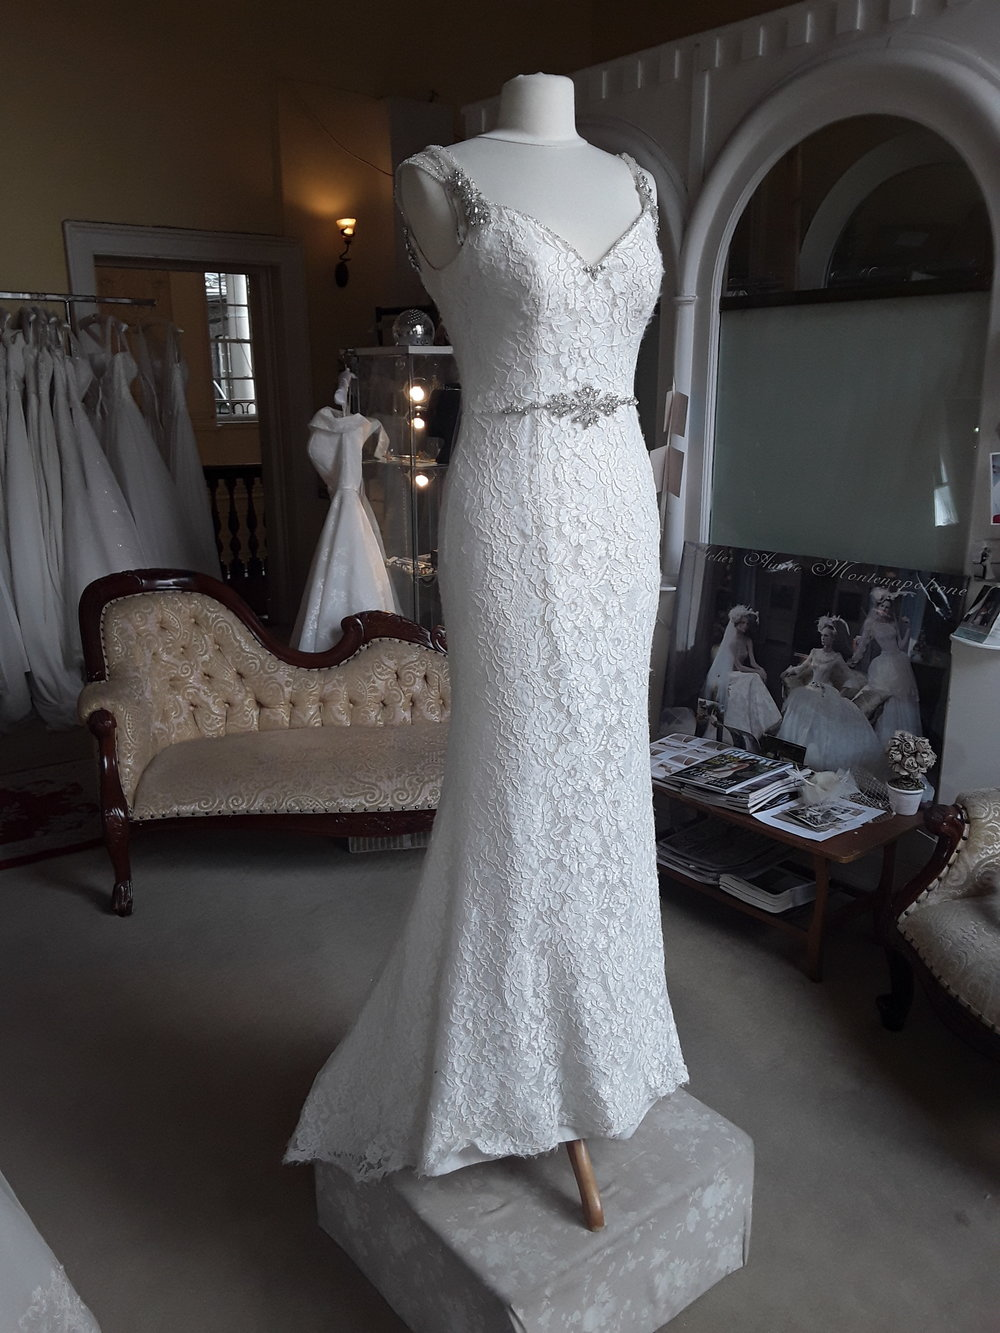 PLBG LACE STRAIGHT DRESS WITH DIAMTE STRAPS AND BELT DETAIL  COLOUR: IVORY  SIZE: 8  WAS €1,395 NOW €499  REF: E124